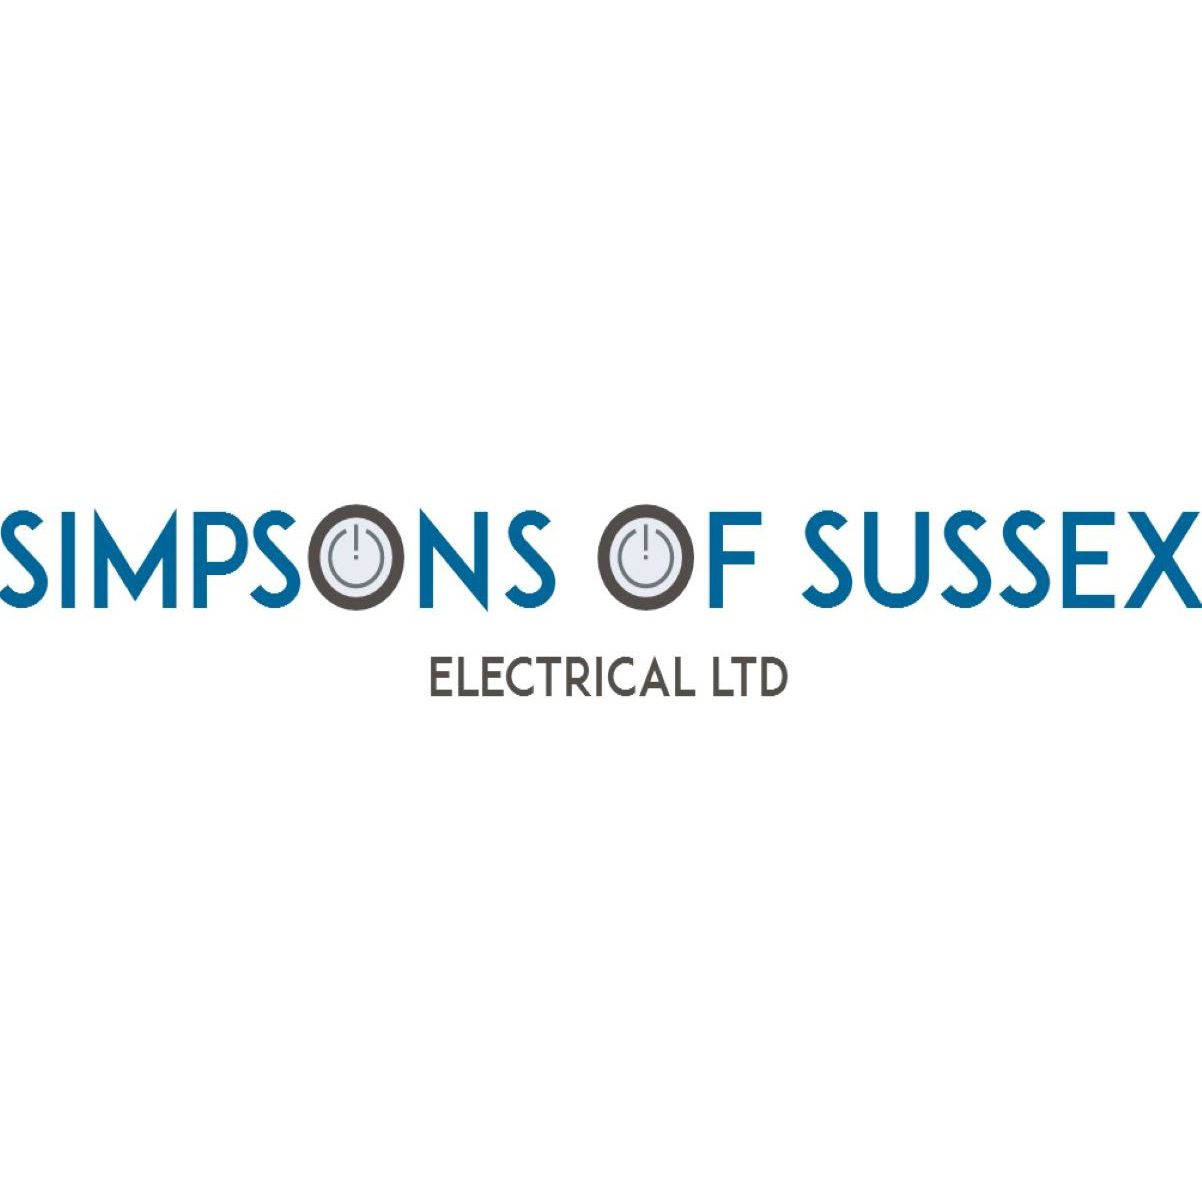 Simpsons of Sussex Electrical Ltd